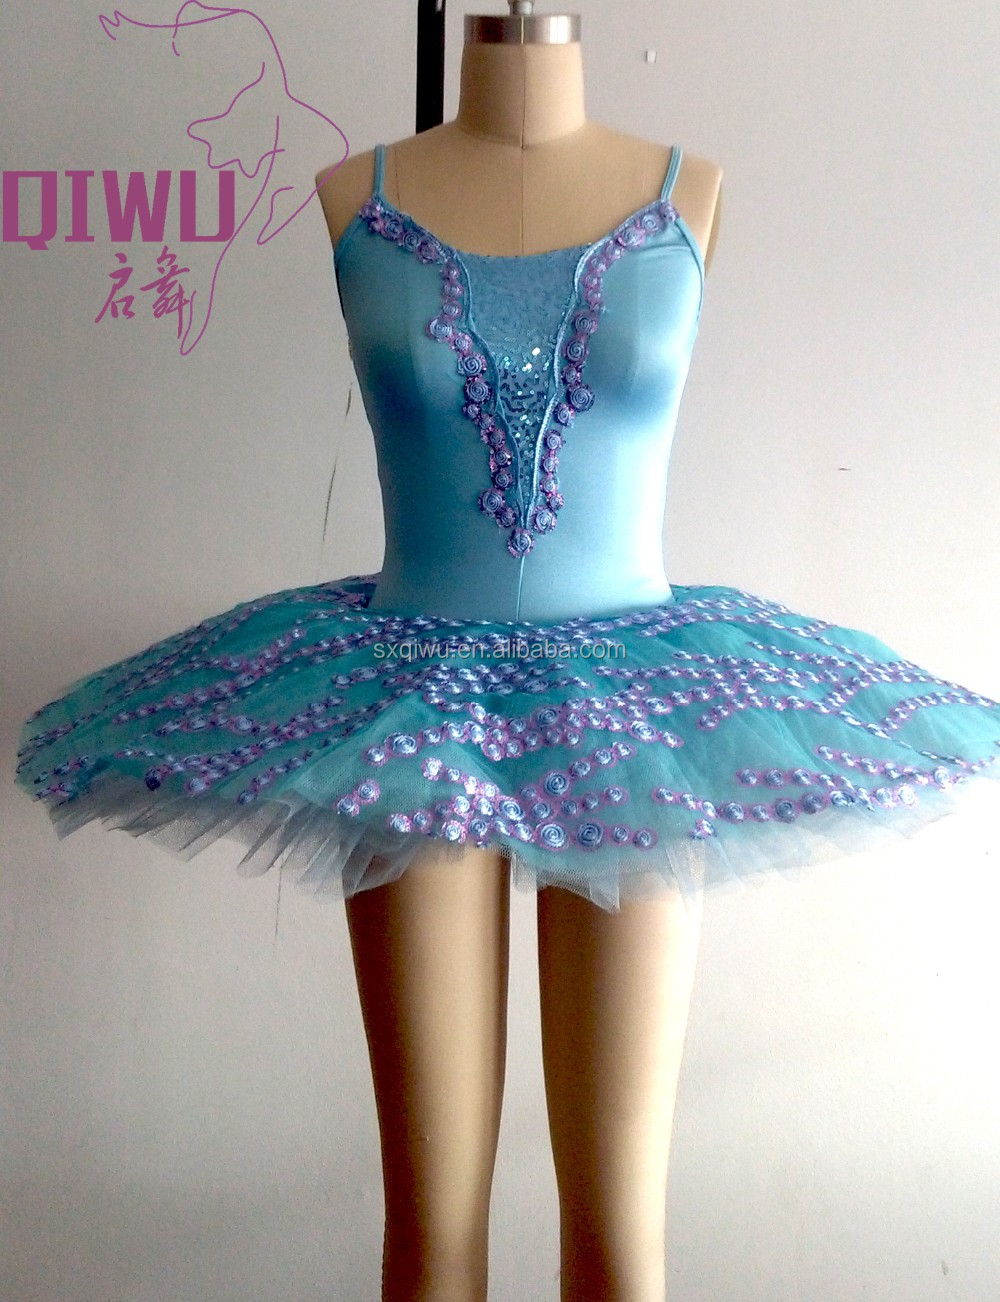 2017 New adult professional ballet tutu costumes ,ballet dancewear Adult ballet-009